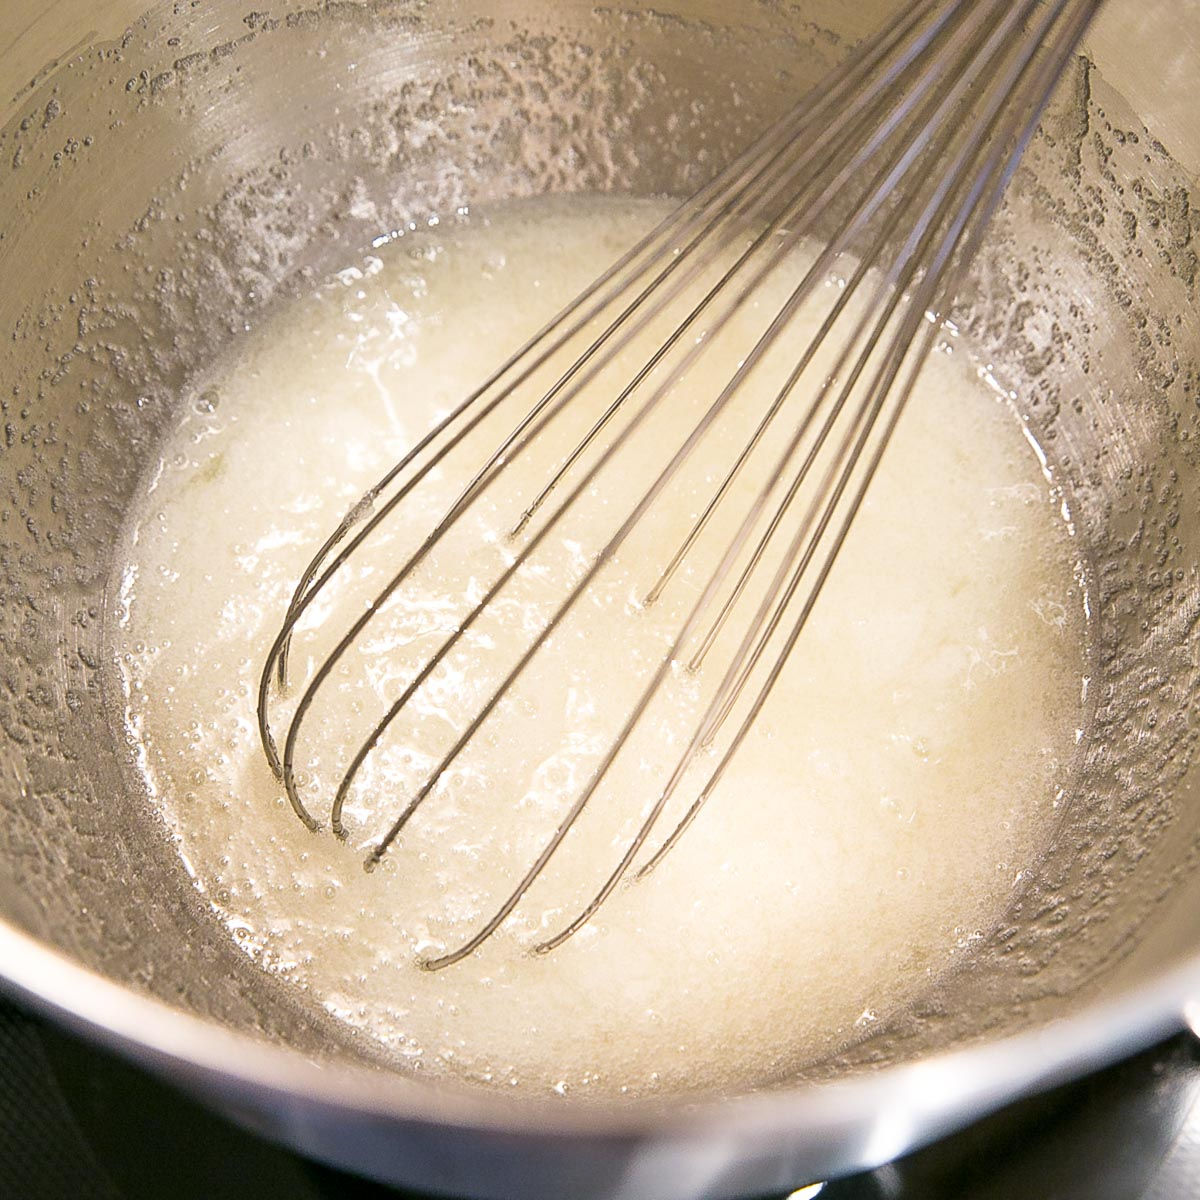 Egg and sugar mixture before cooking.